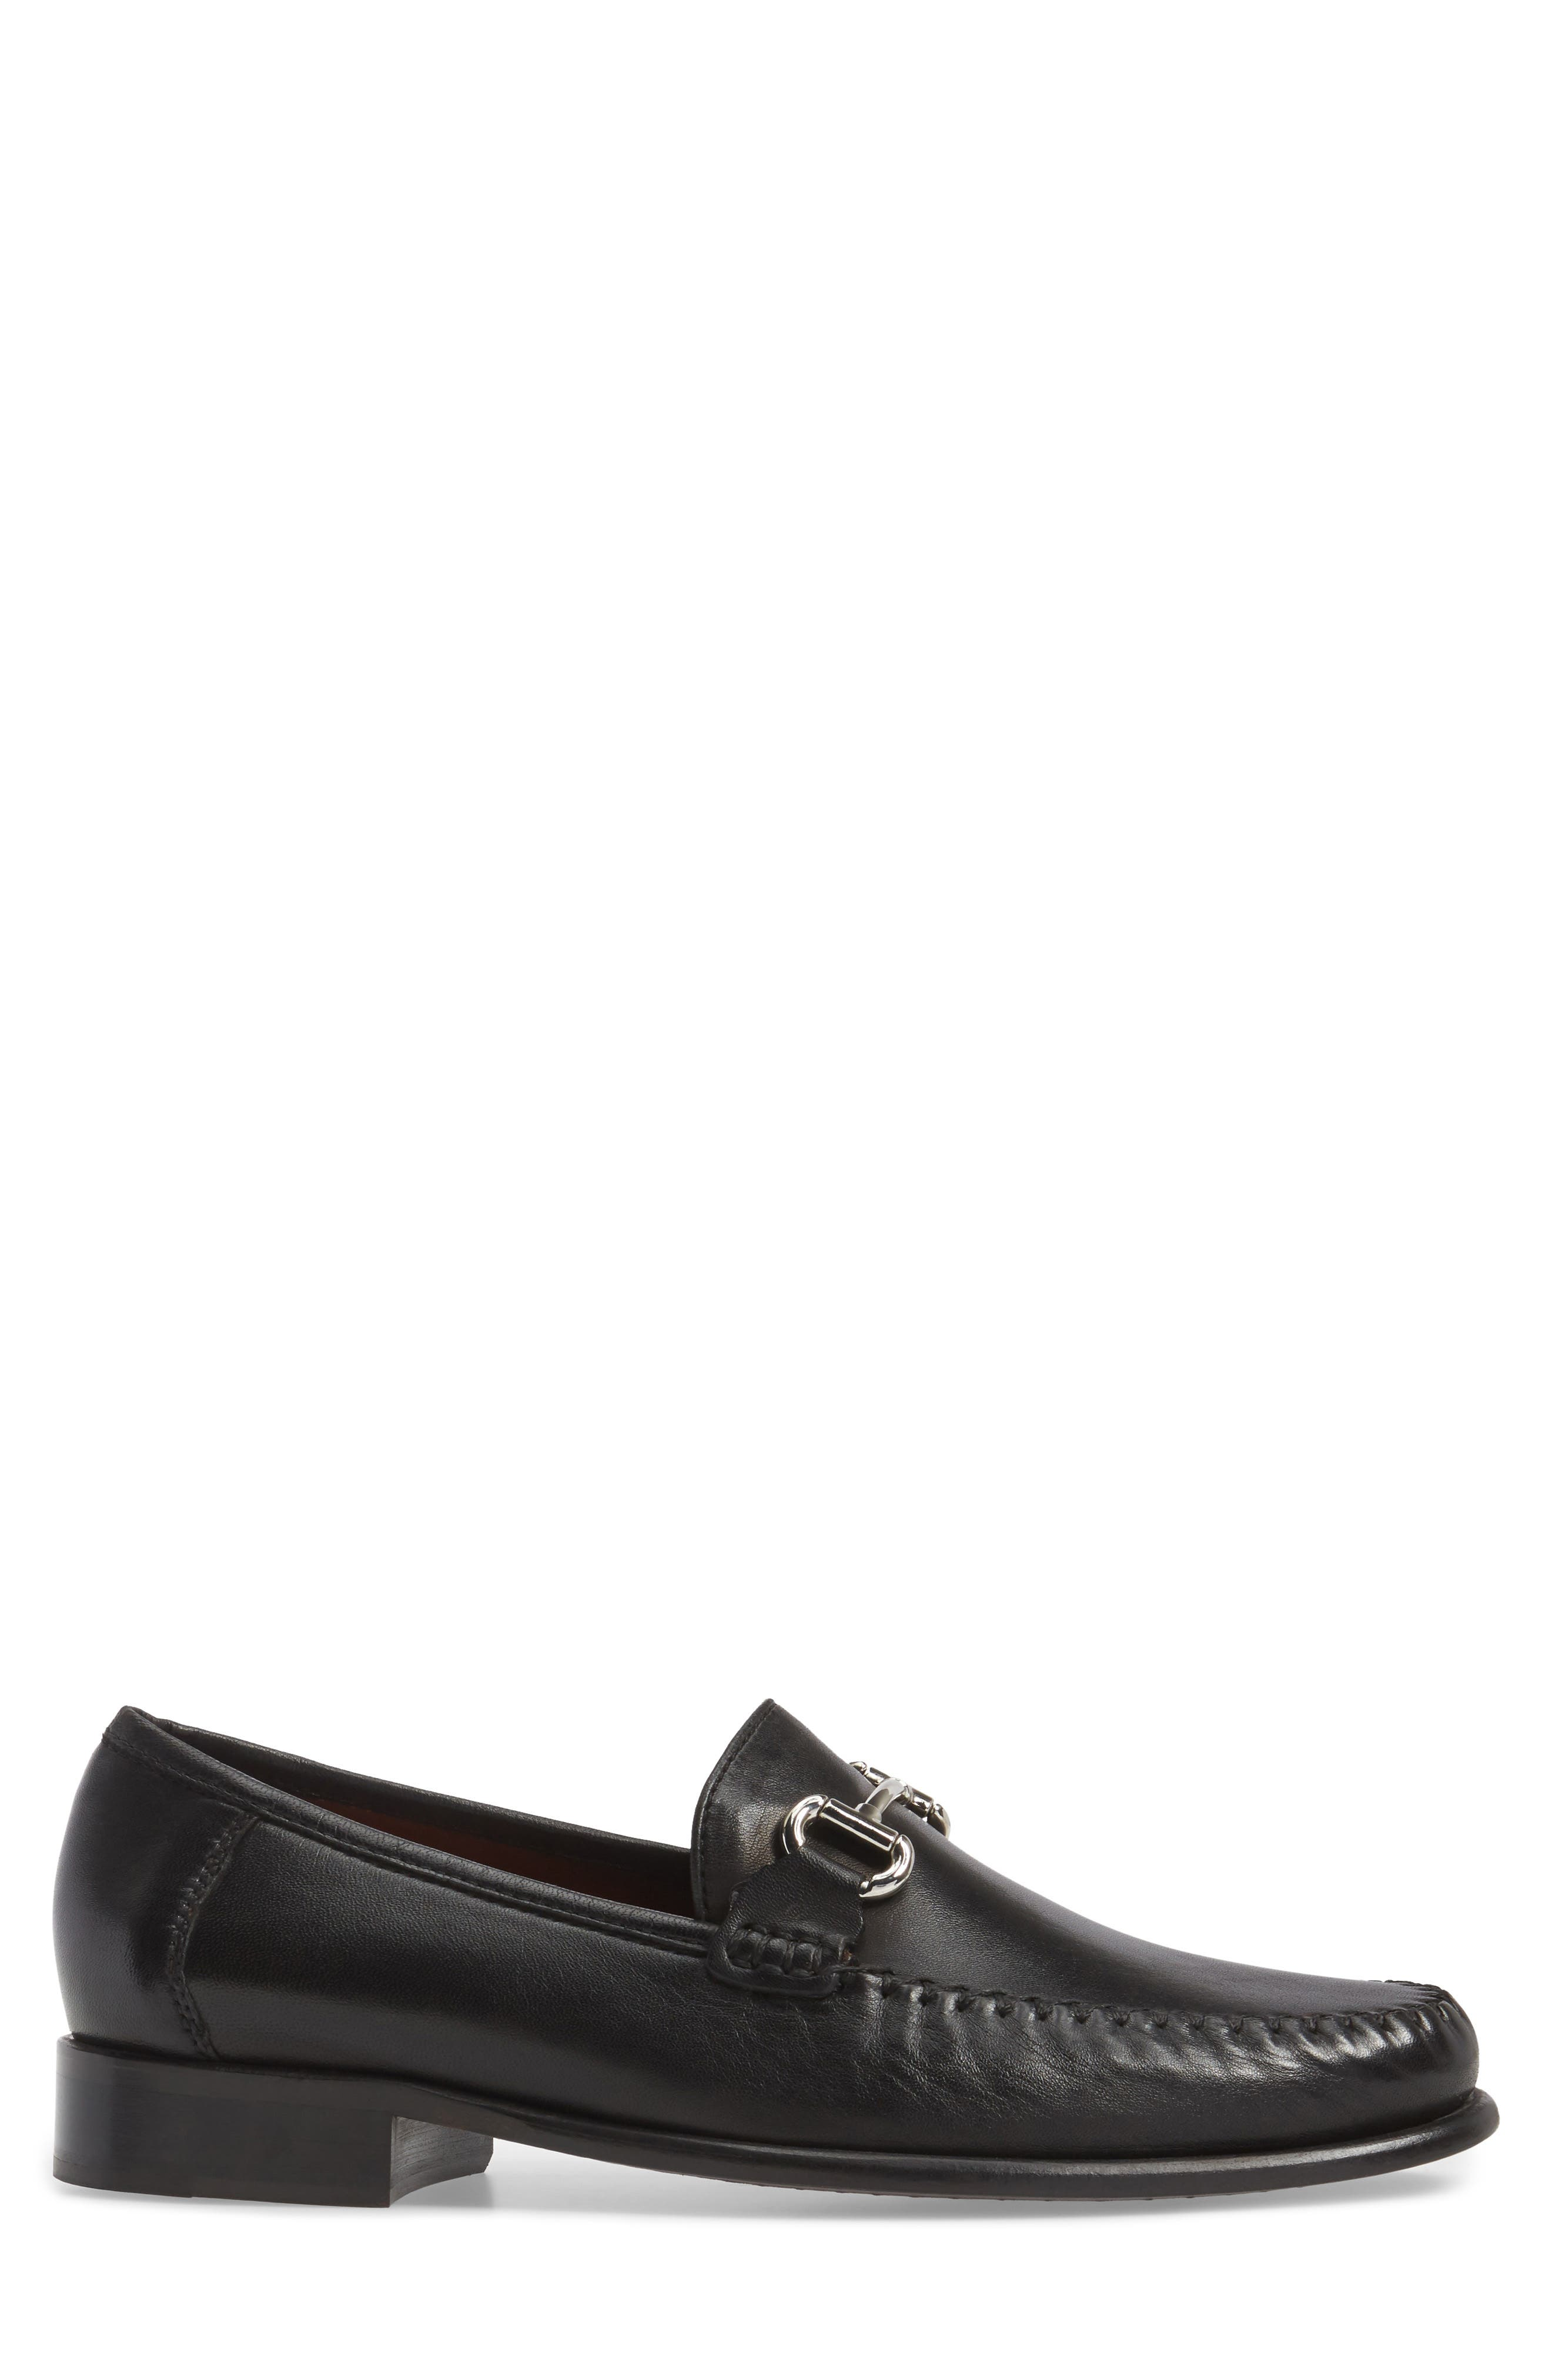 Alternate Image 3  - Robert Zur Elton Bit Loafer (Men)